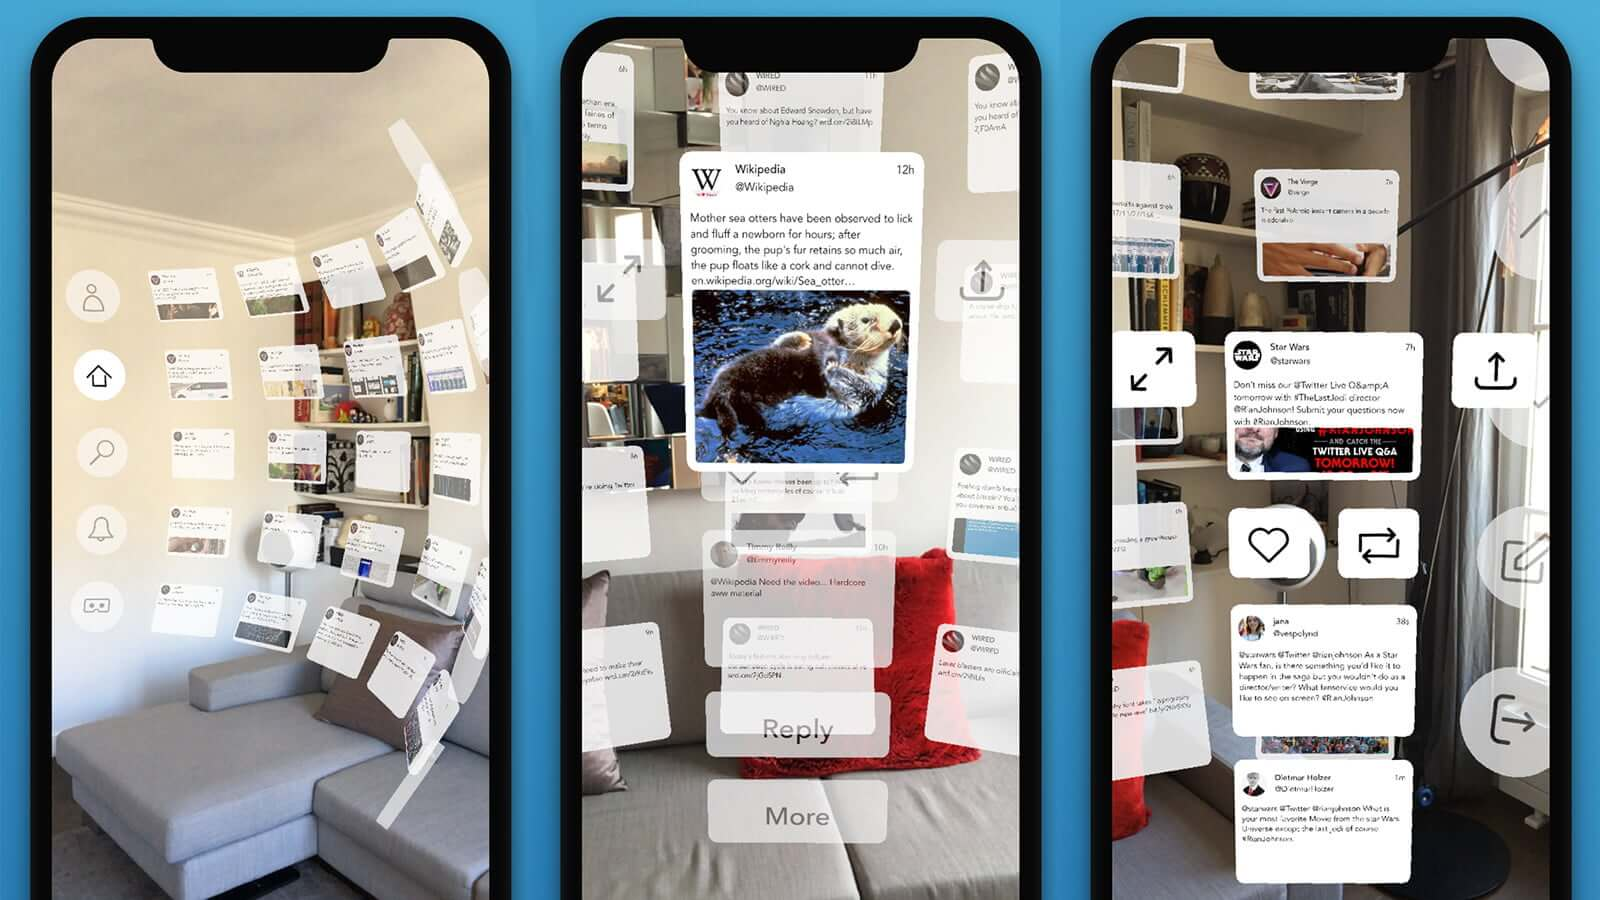 Tweetreality App Bringing Twitter To Augmented Reality